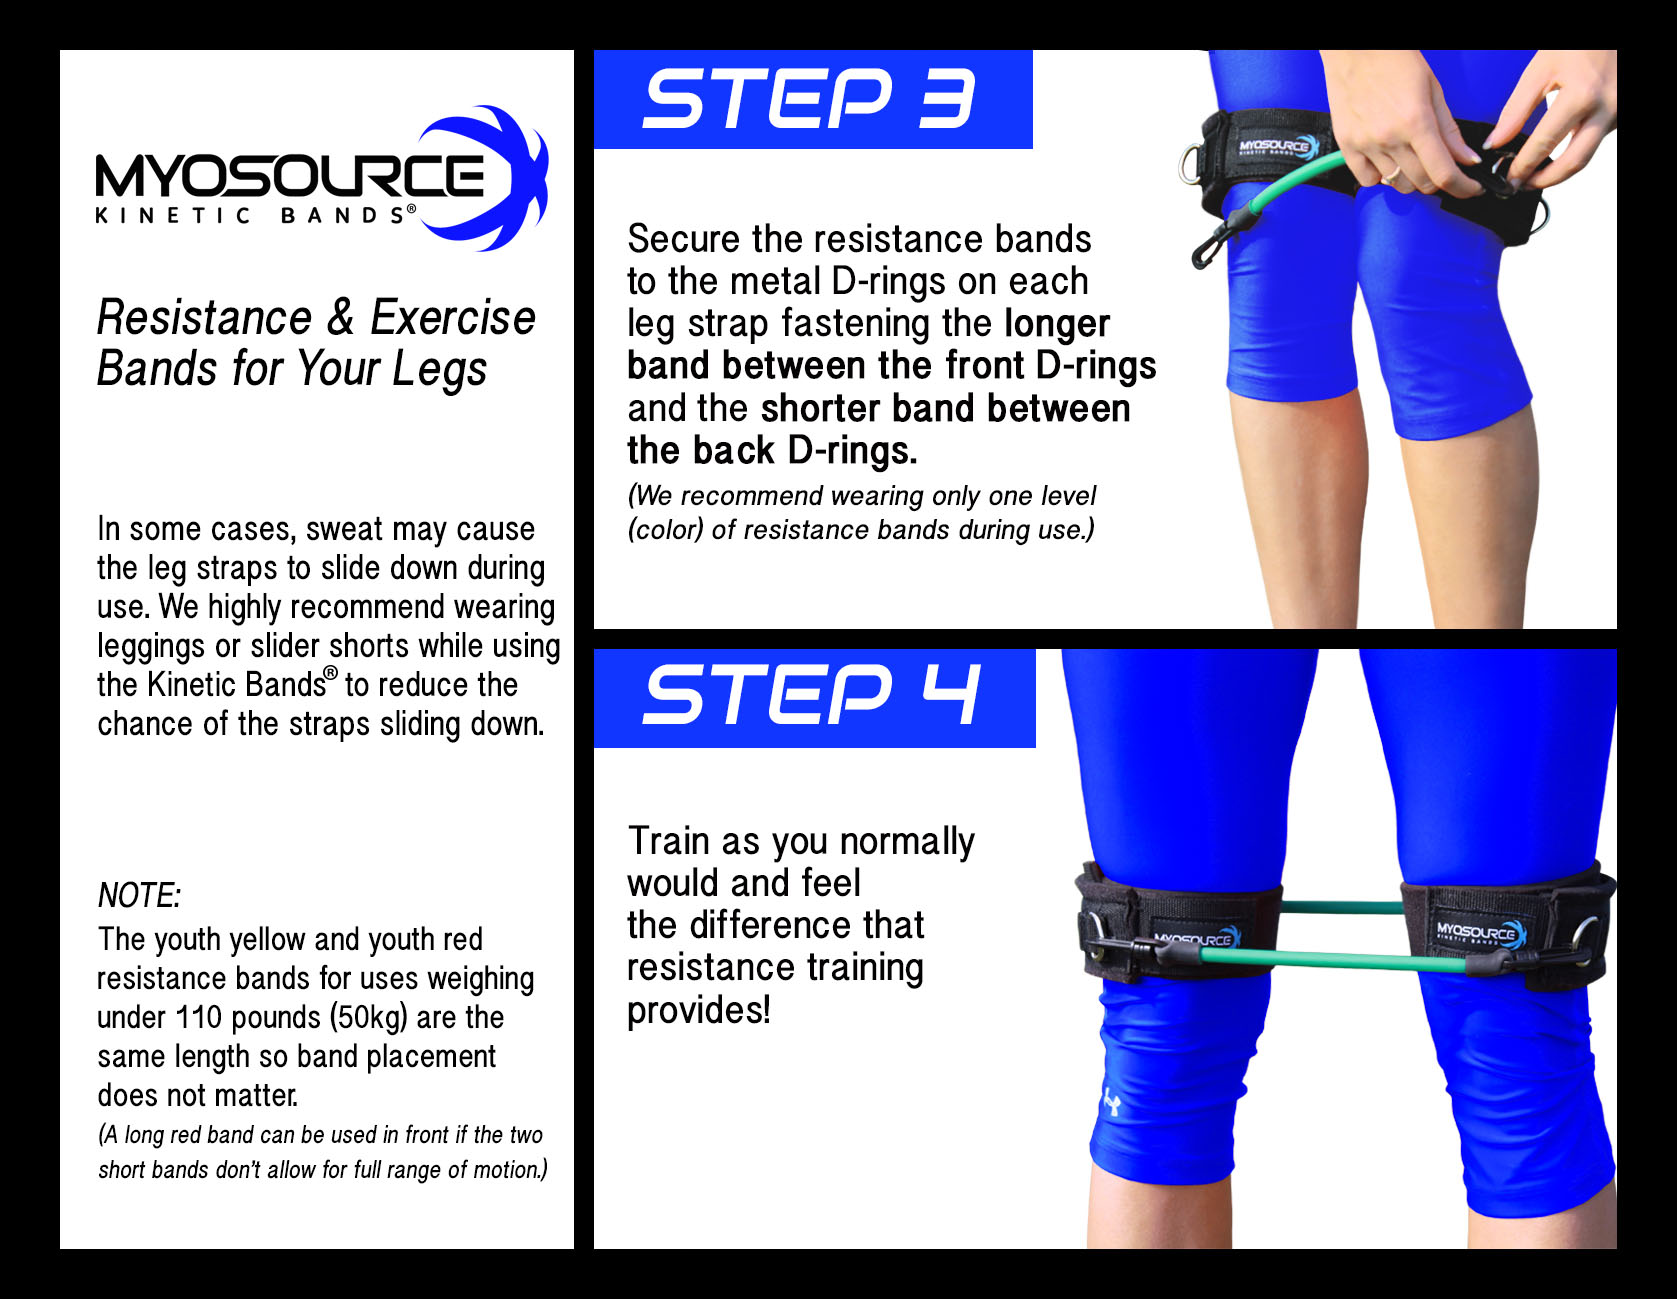 How To Put On The Kinetic Bands - Steps 3 and 4